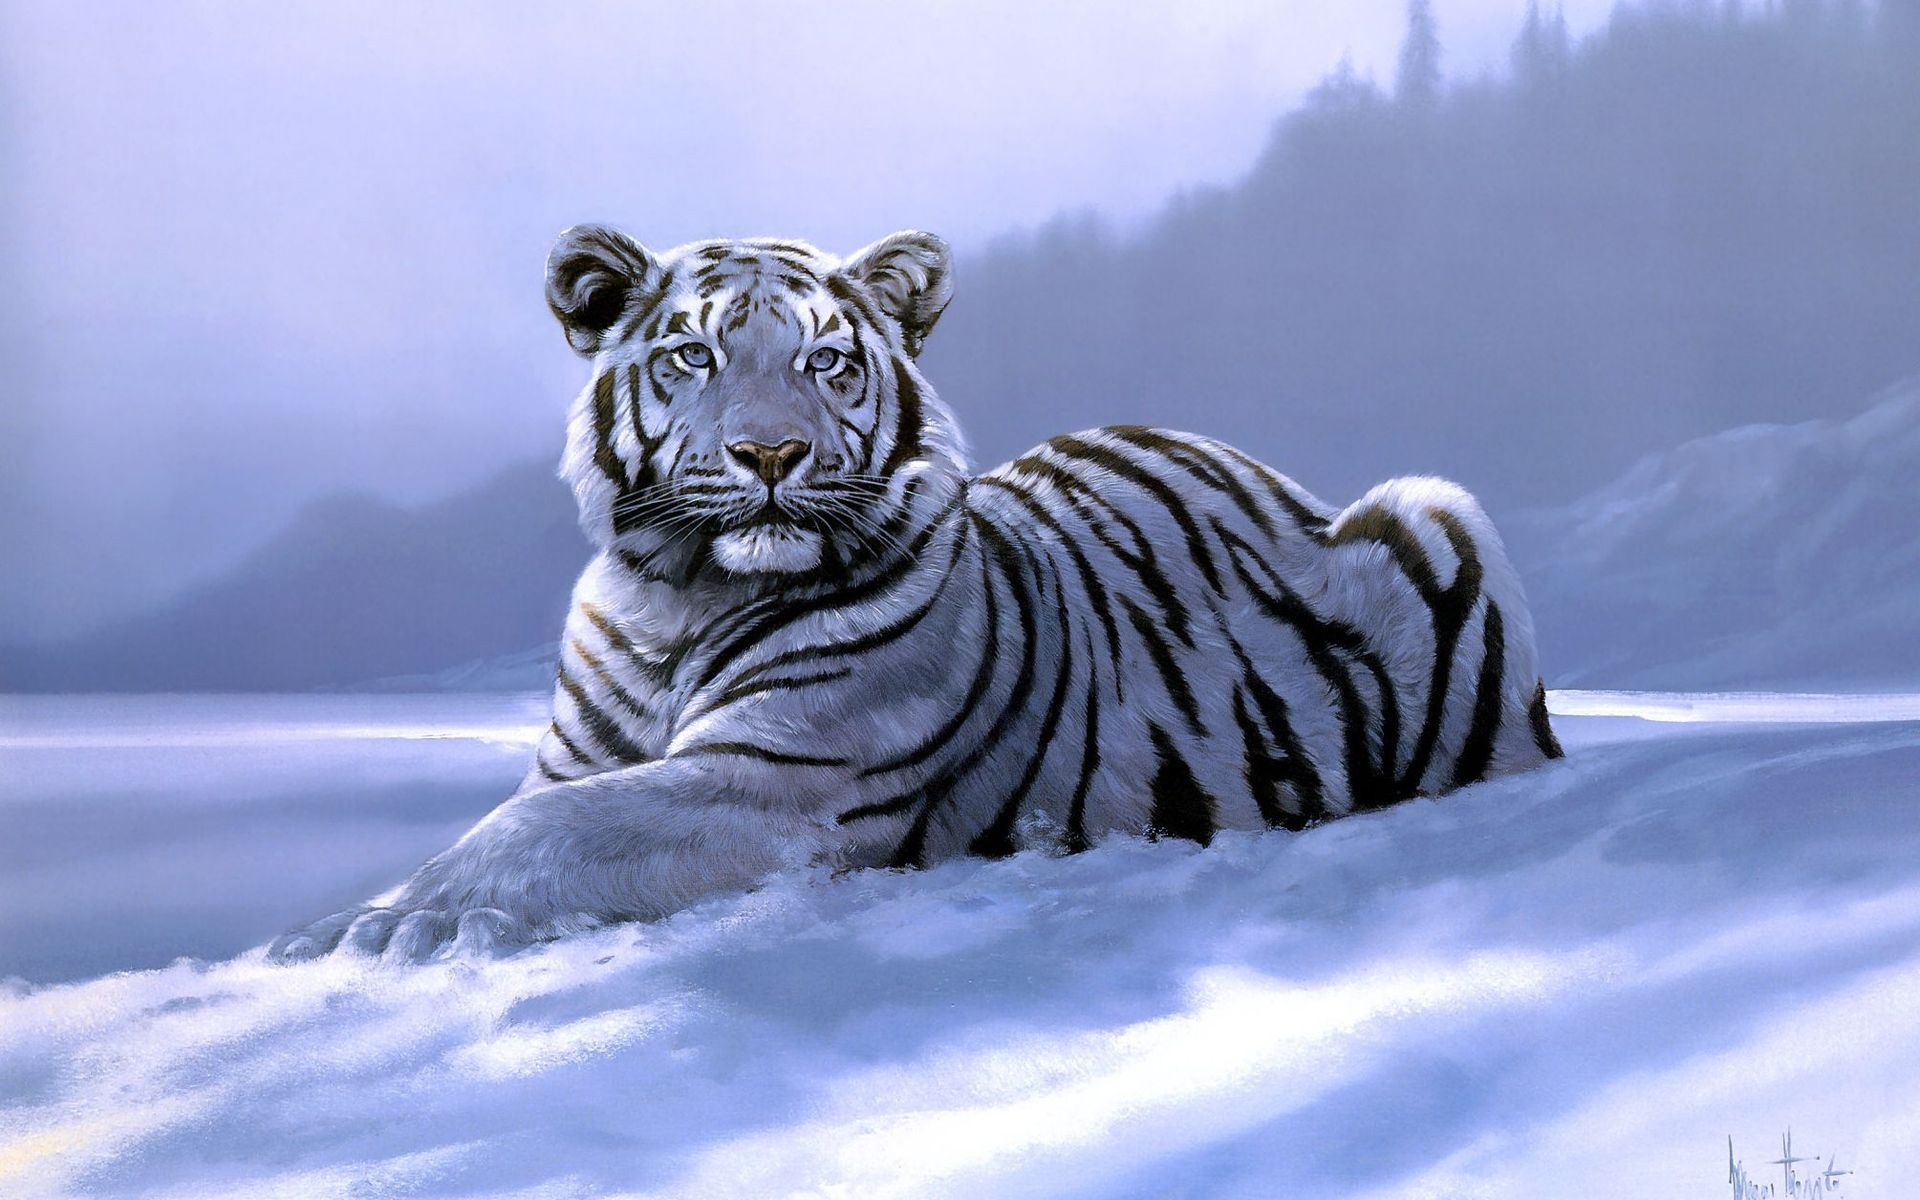 Must see Wallpaper High Quality Tiger - Tiger-White-Backgrounds-006  Collection_98135.jpg